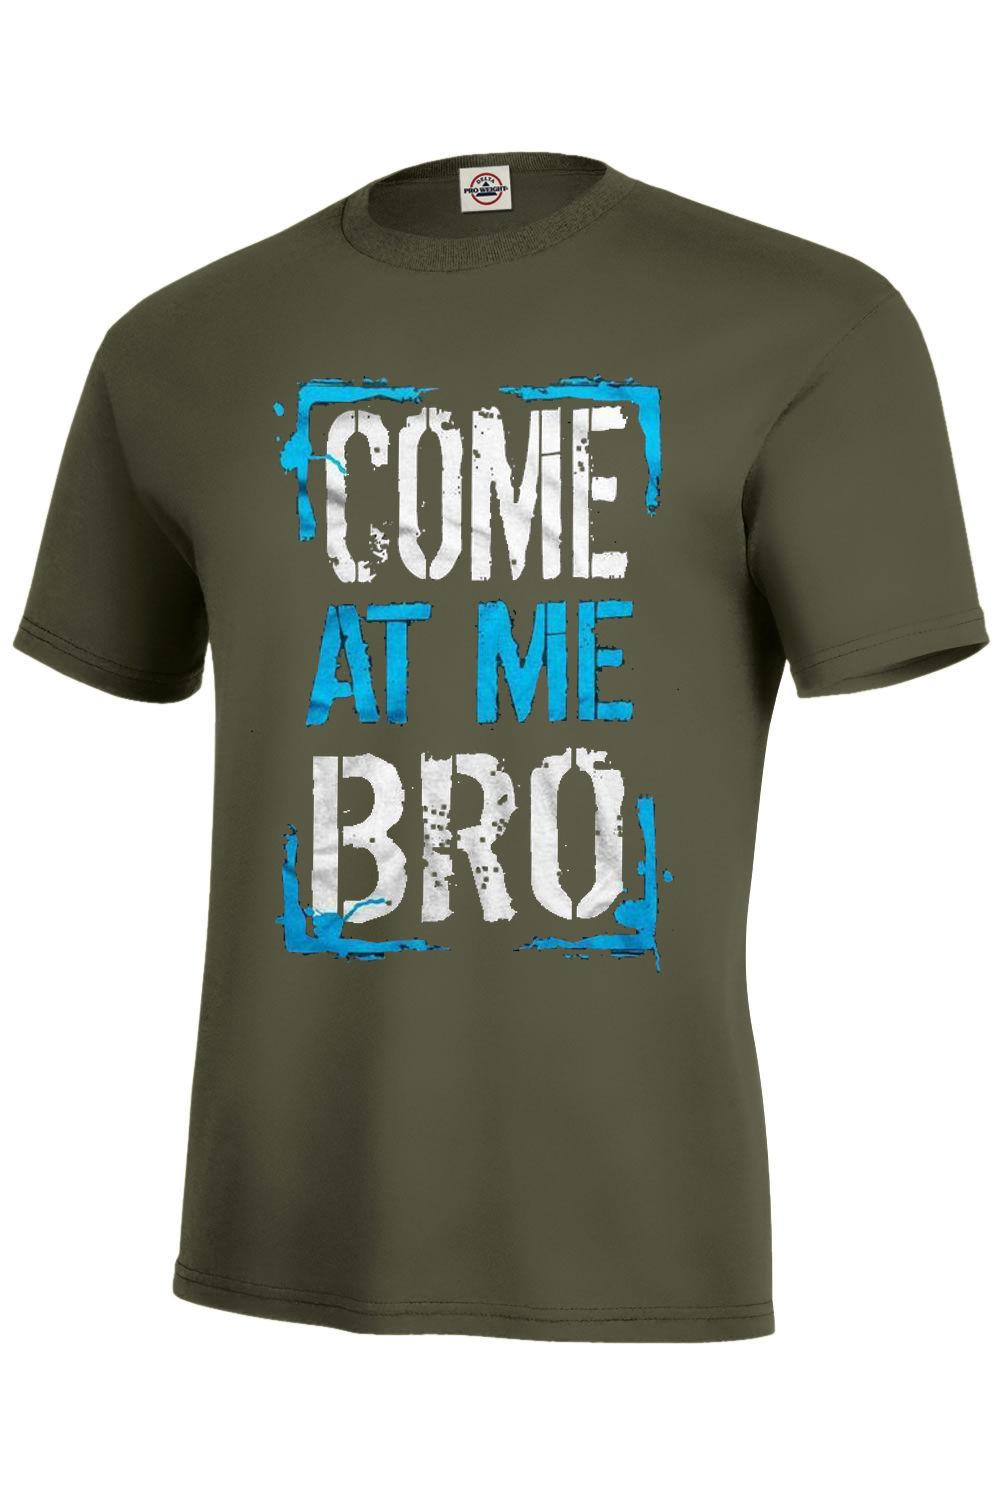 39747980fc COME AT ME BRO T Shirt Assorted Colors Kids M10 12 XL18 20 Adult S 5XL  Hilarious Funny Unisex Casual Gift Awesome T Shirts Online A T Shirts From  ...